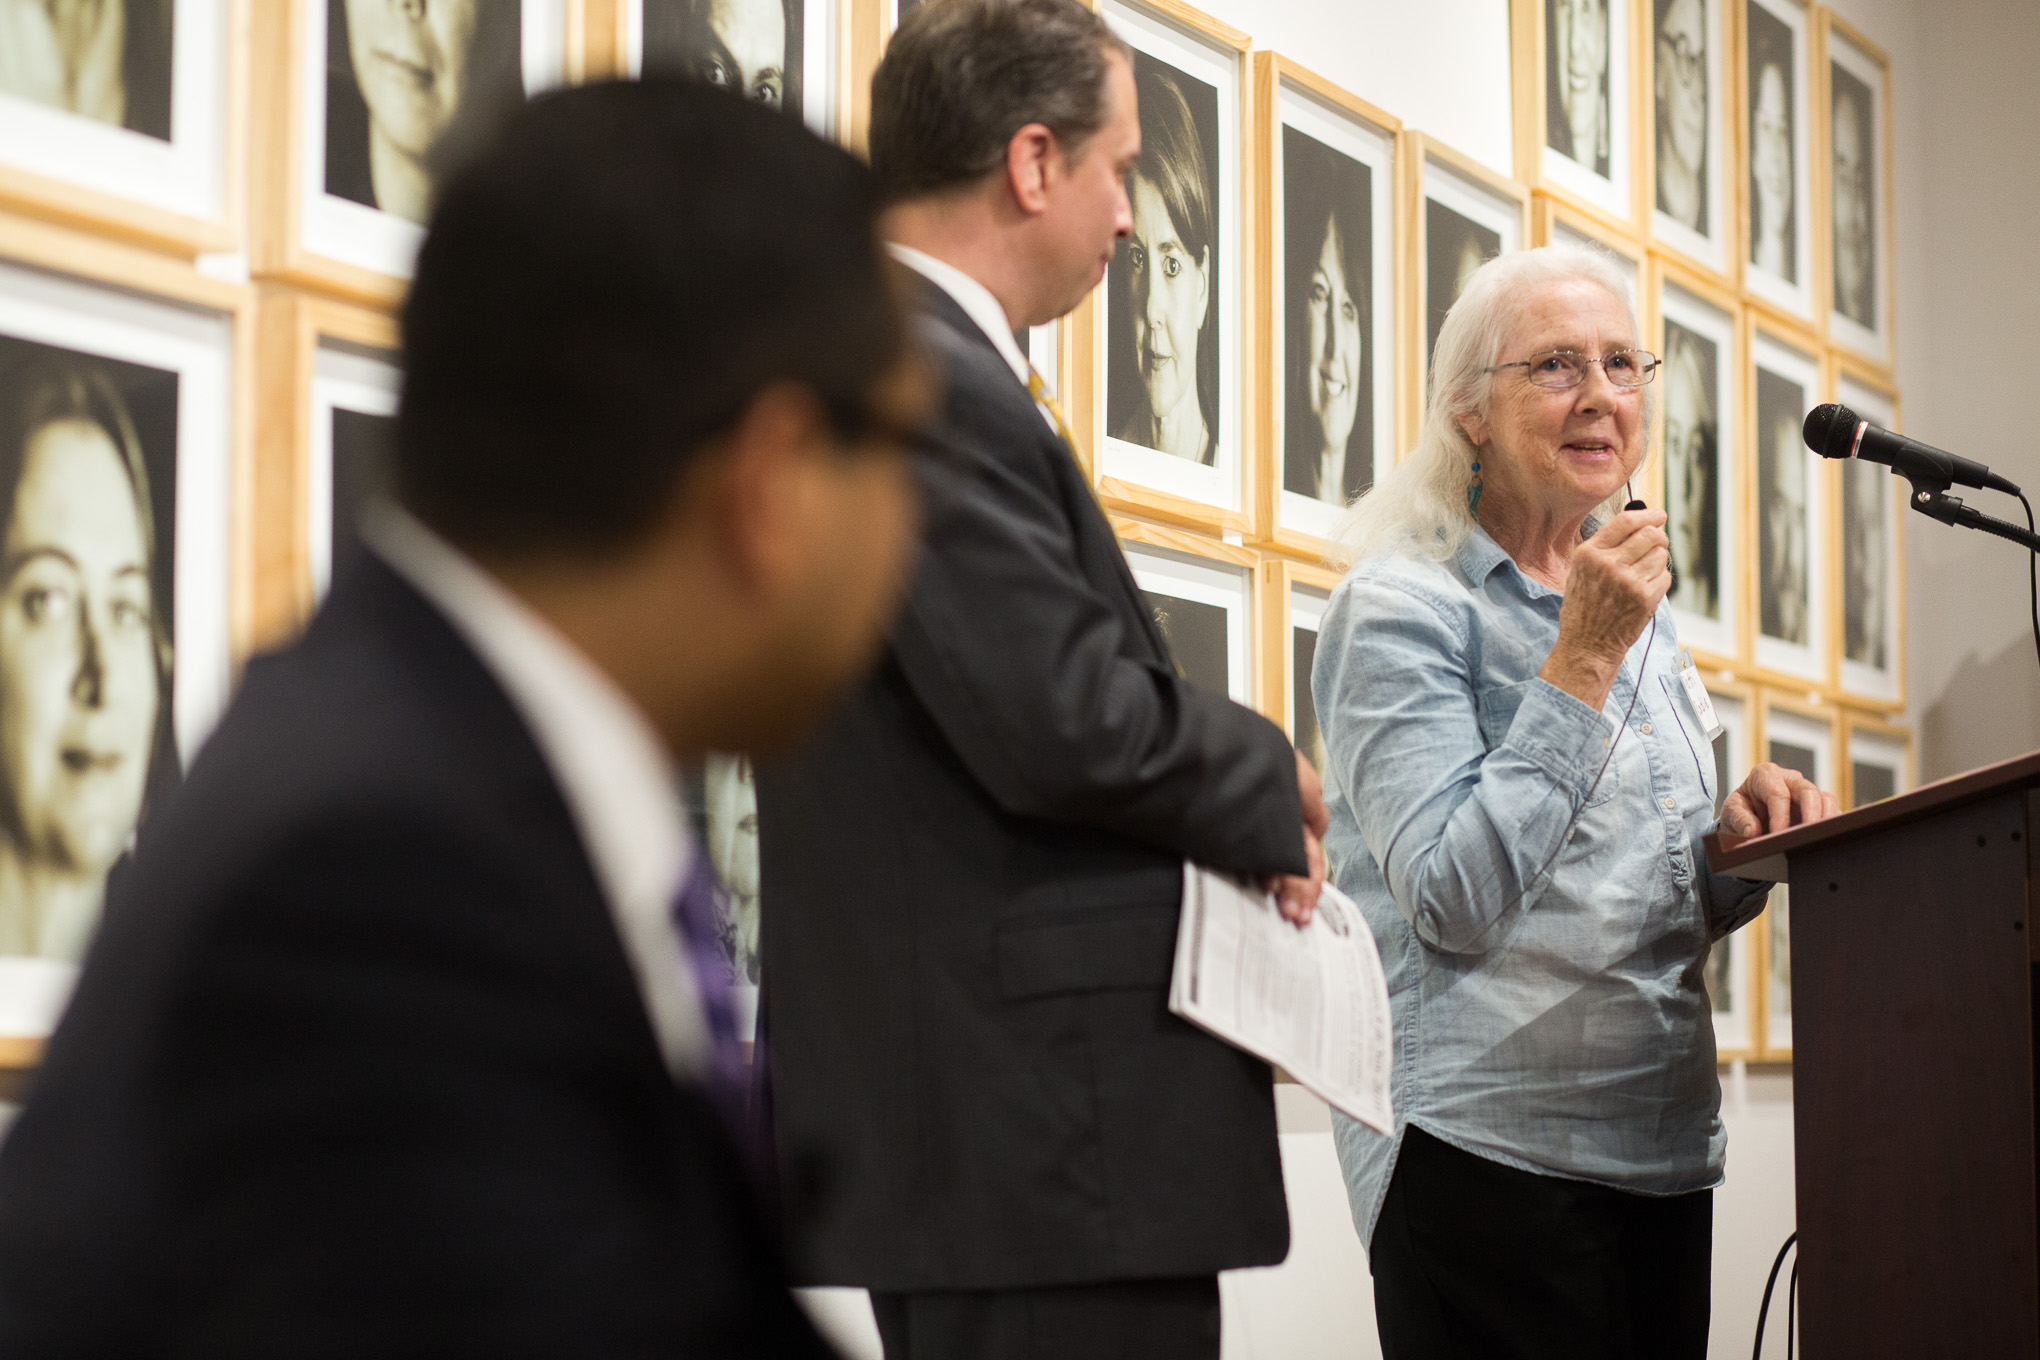 SAISD Board President Patti Radle gives opening remarks before 'Ed Chat'. Photo by Scott Ball.